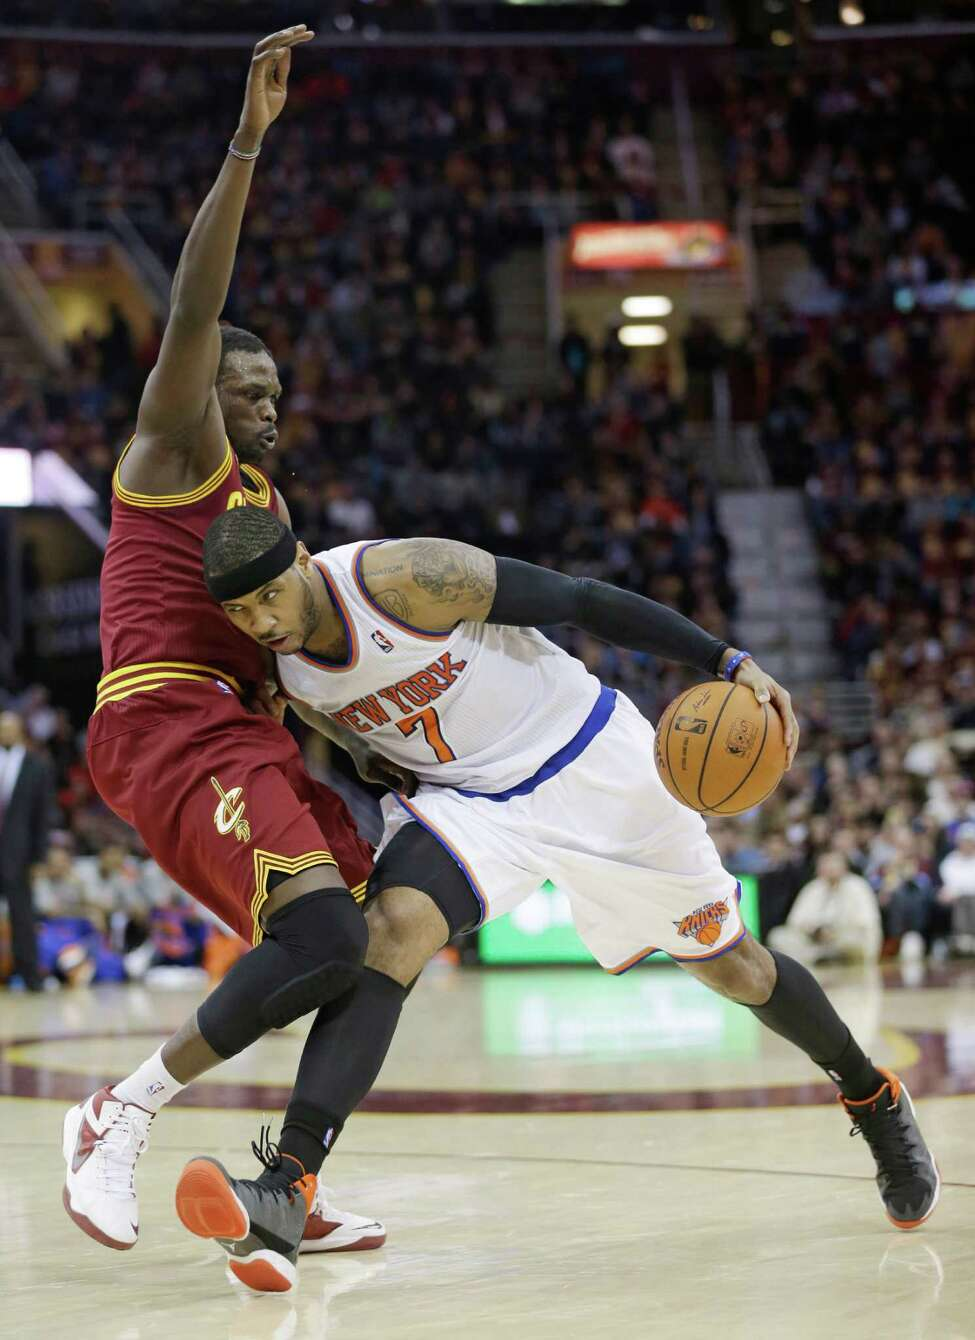 New York Knicks' Carmelo Anthony, right, drives against Cleveland Cavaliers' Luol Deng during an NBA basketball game Saturday, March 8, 2014, in Cleveland. Anthony scored a team-high 26 points in New York's 107-97 win over Cleveland. (AP Photo/Tony Dejak) ORG XMIT: OHTD107